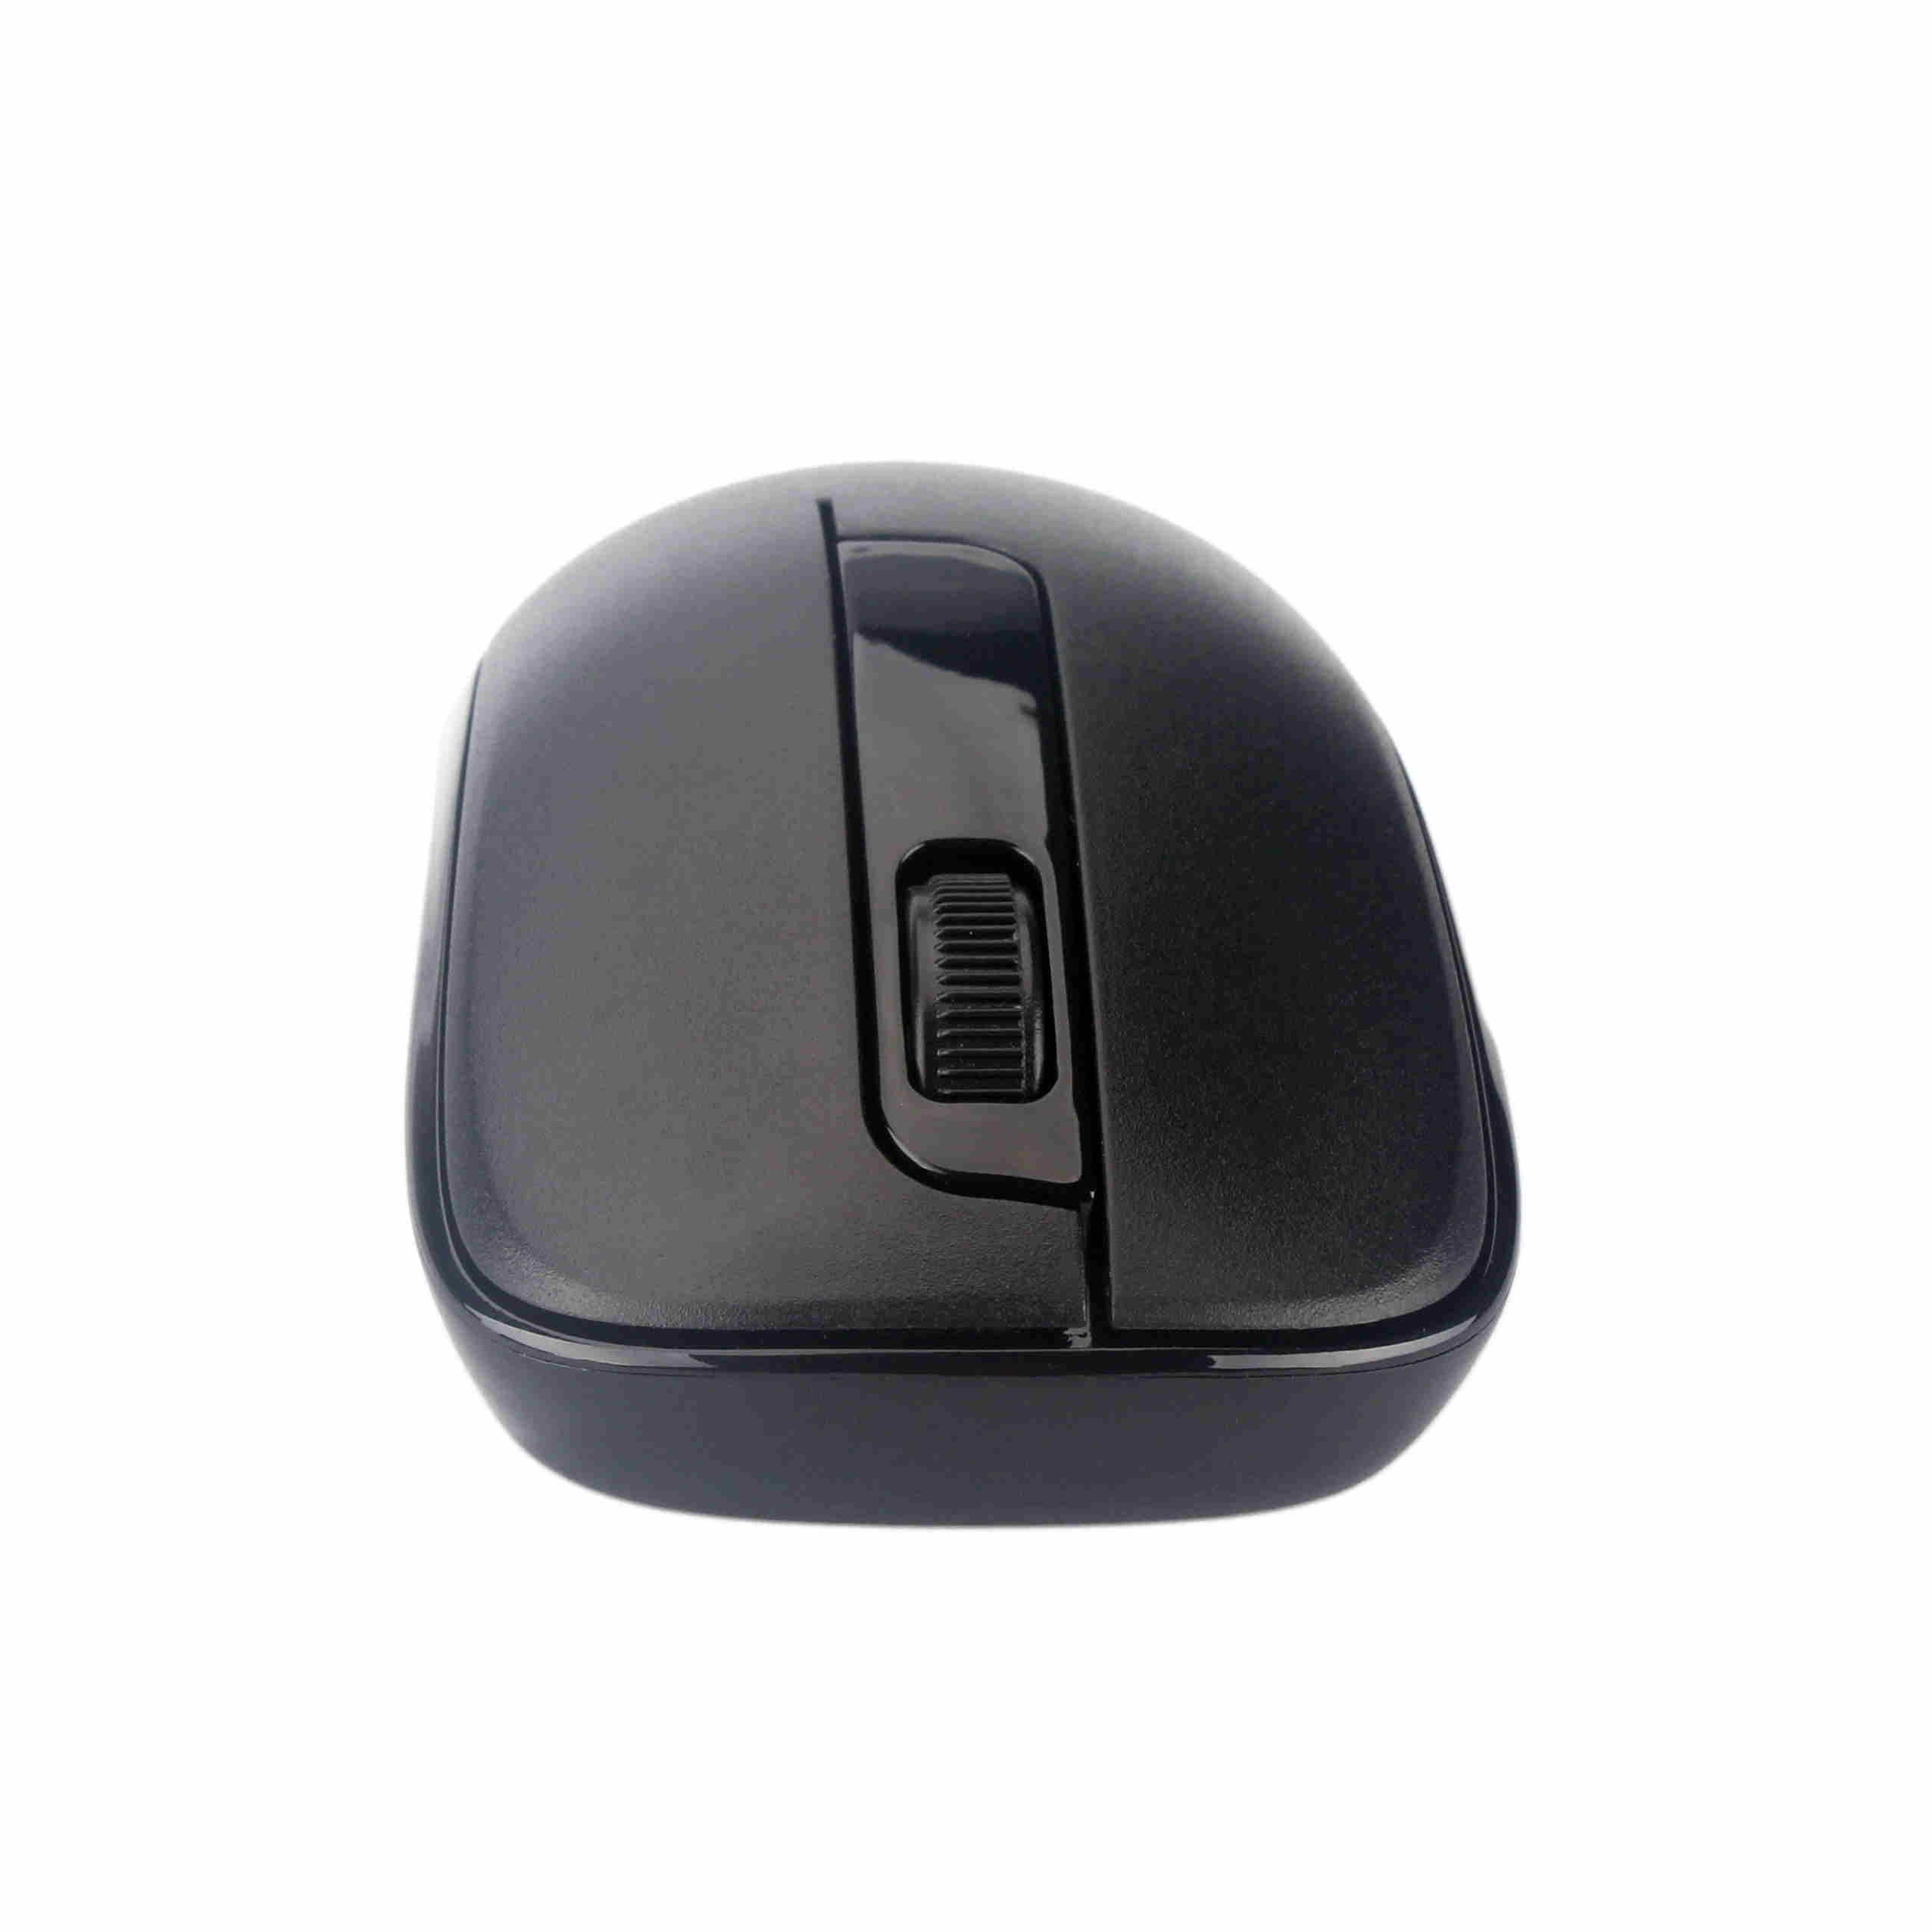 Office Wireless Mouse,Classic Design,3 Button